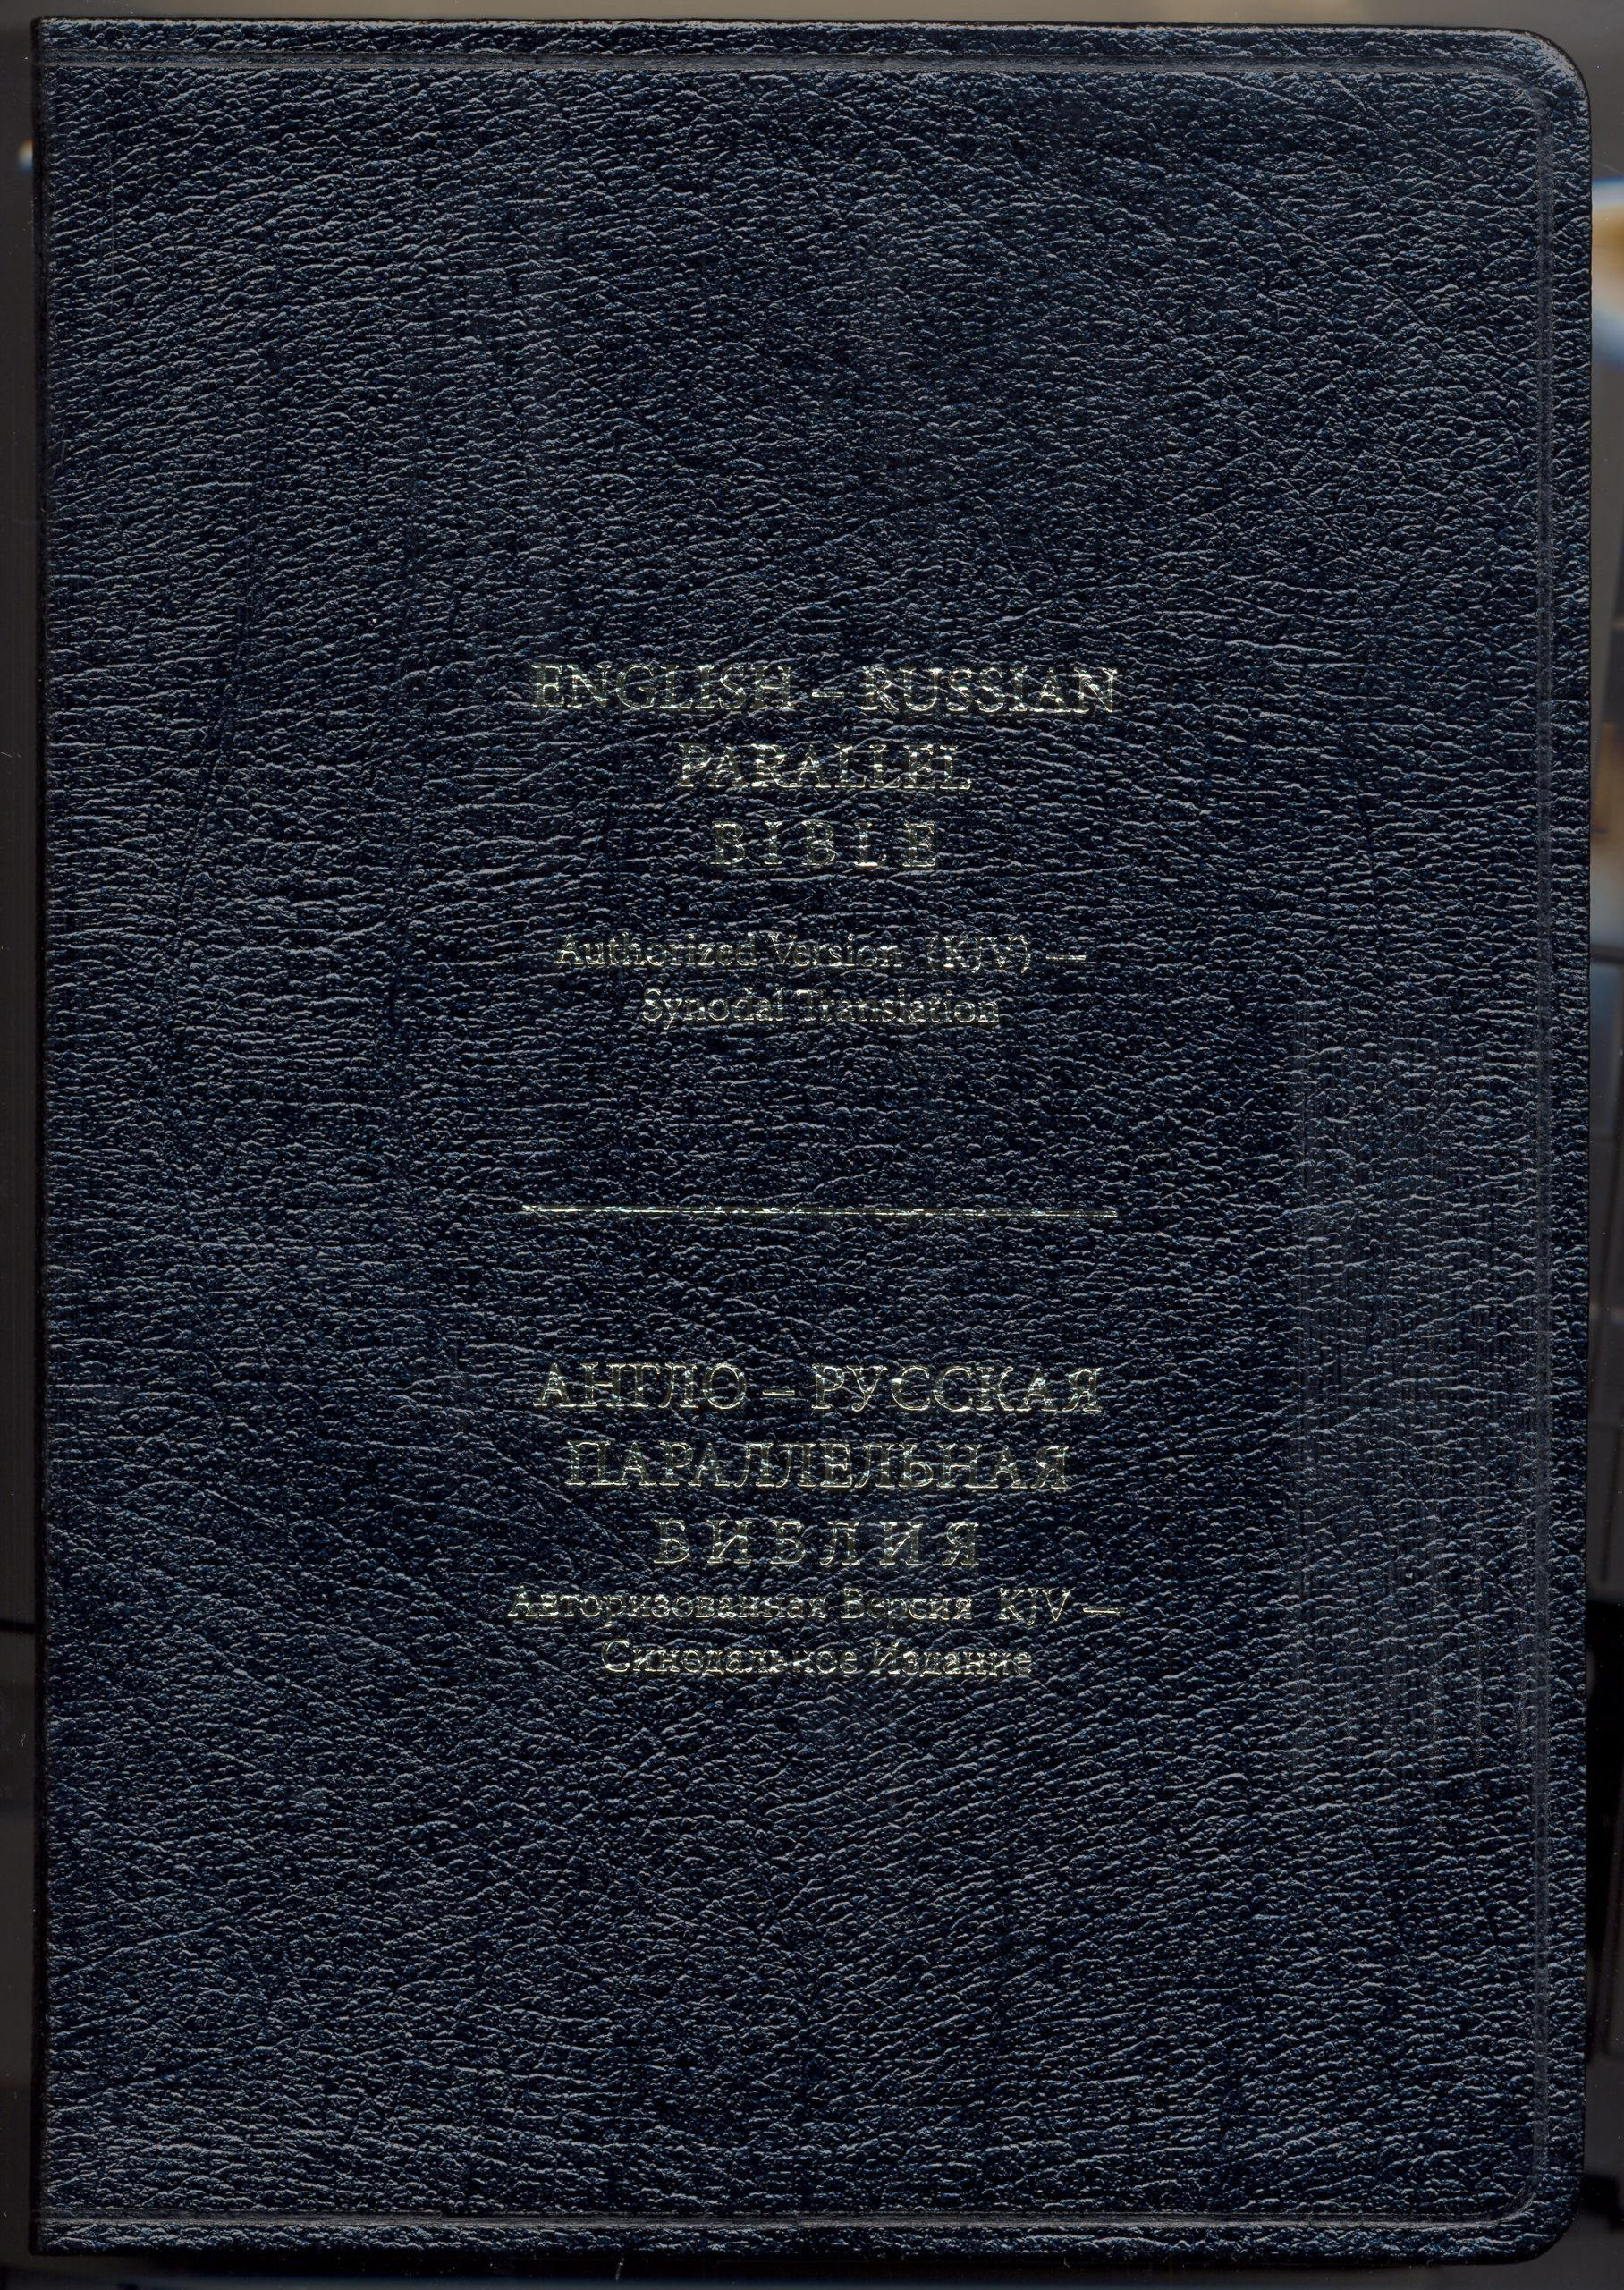 English-Russian Parallel Bible- Genuine leather - No Thunb Index